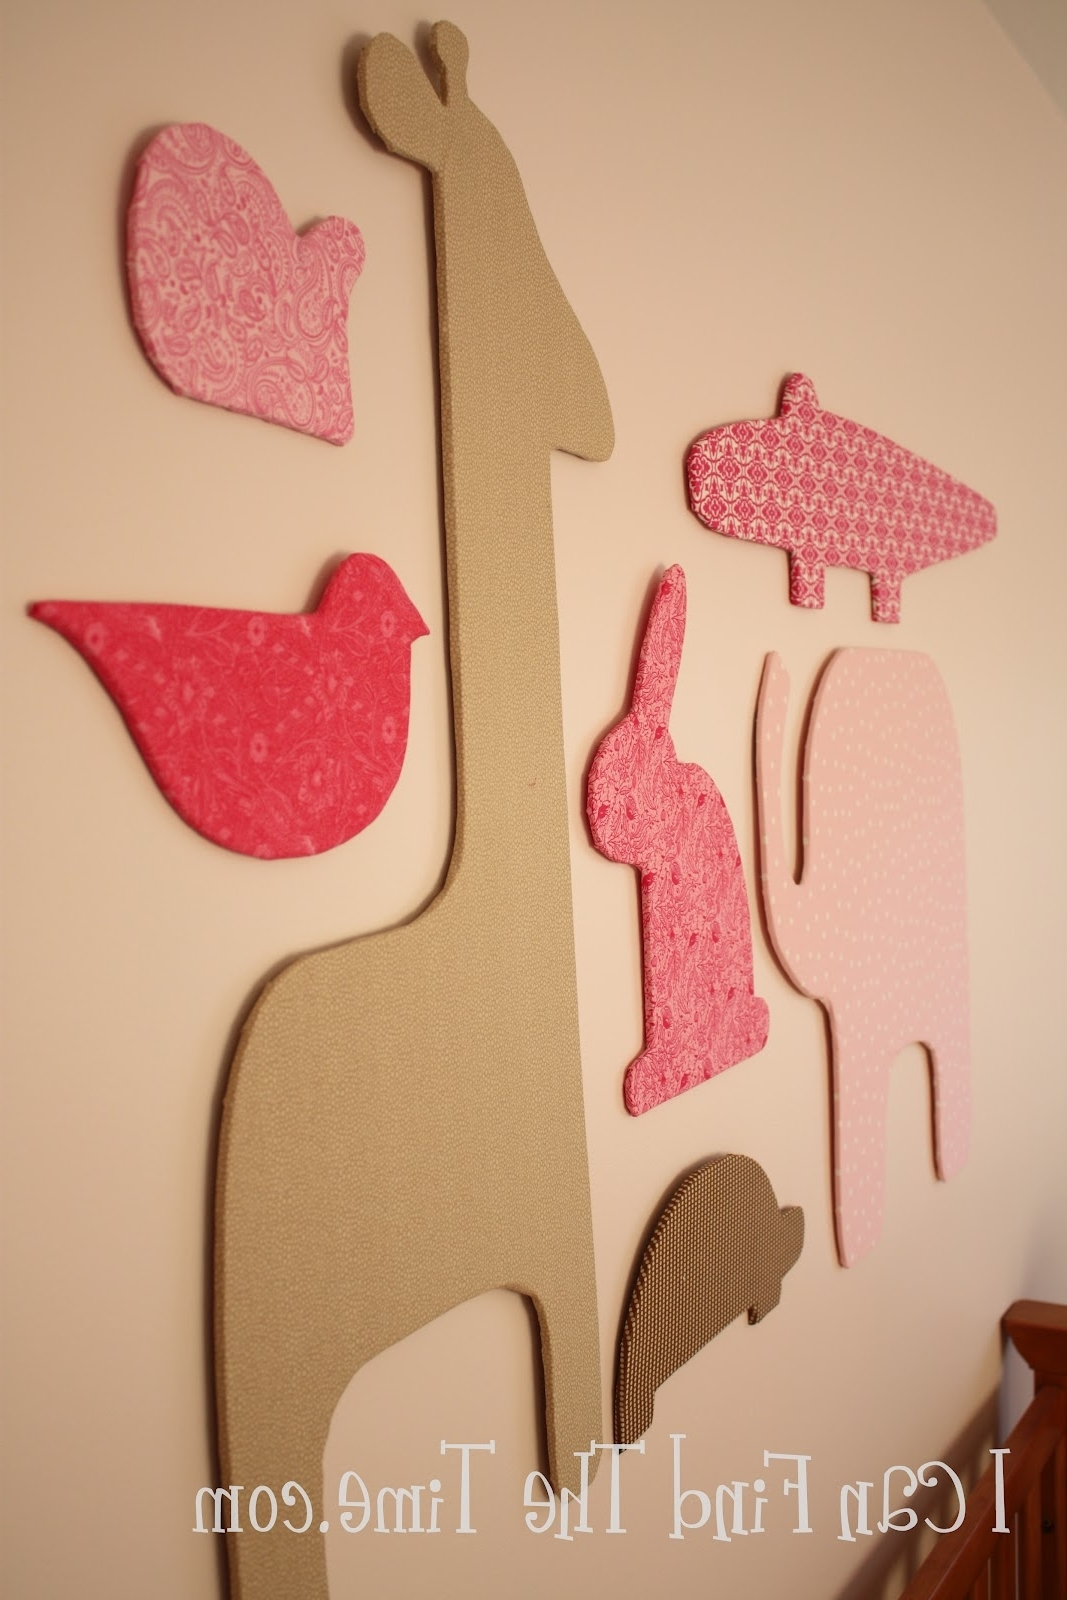 Easy Fabric Silhouette Wall Art Within Widely Used Foam Board Fabric Wall Art (View 3 of 15)